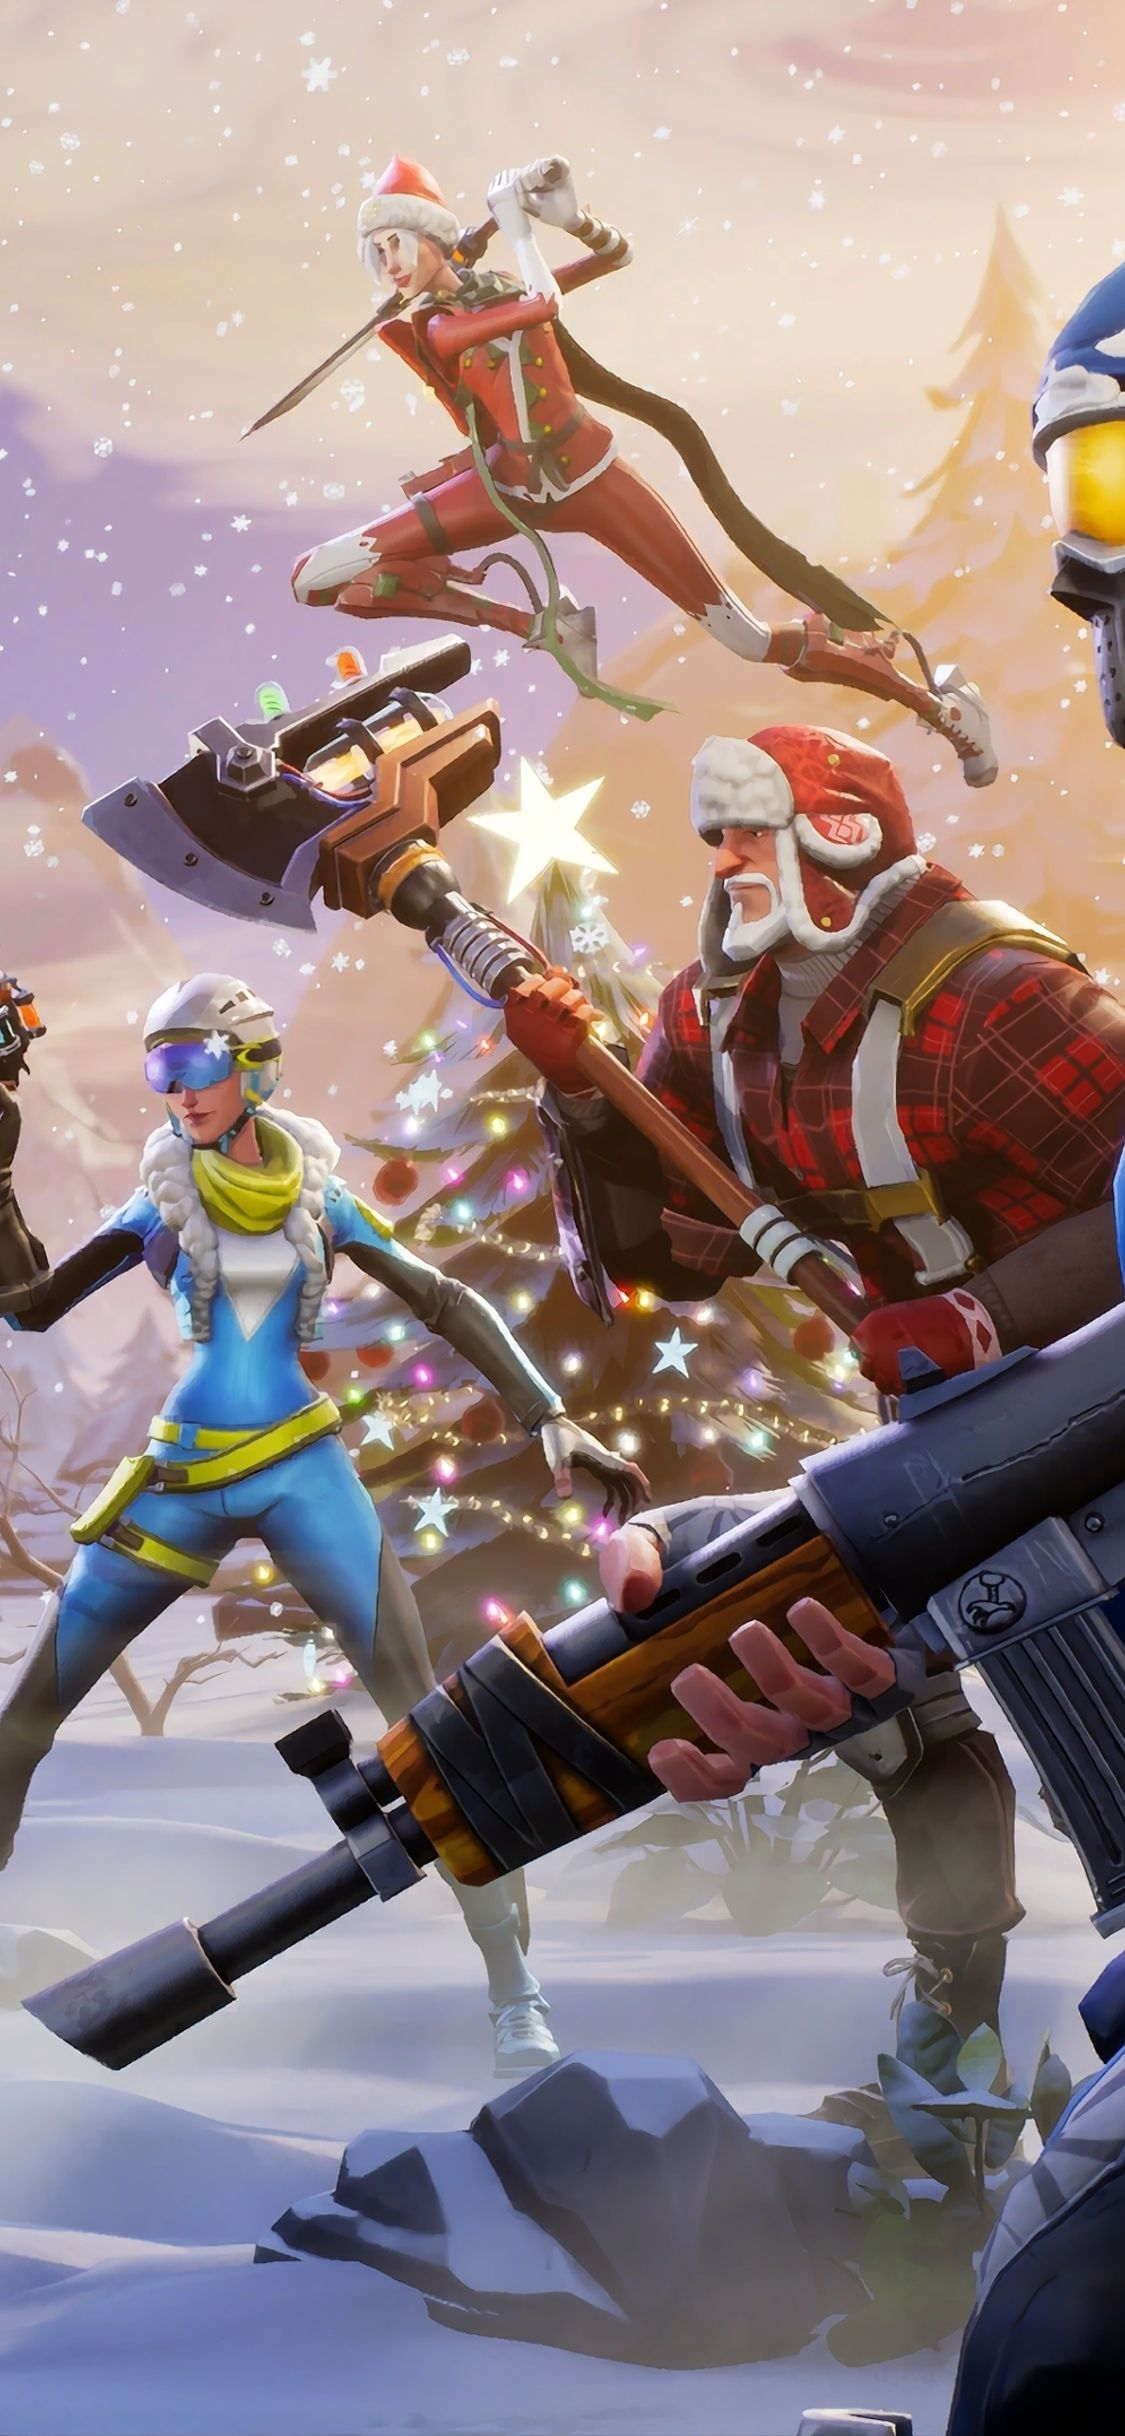 Fortnite X Wallpaper